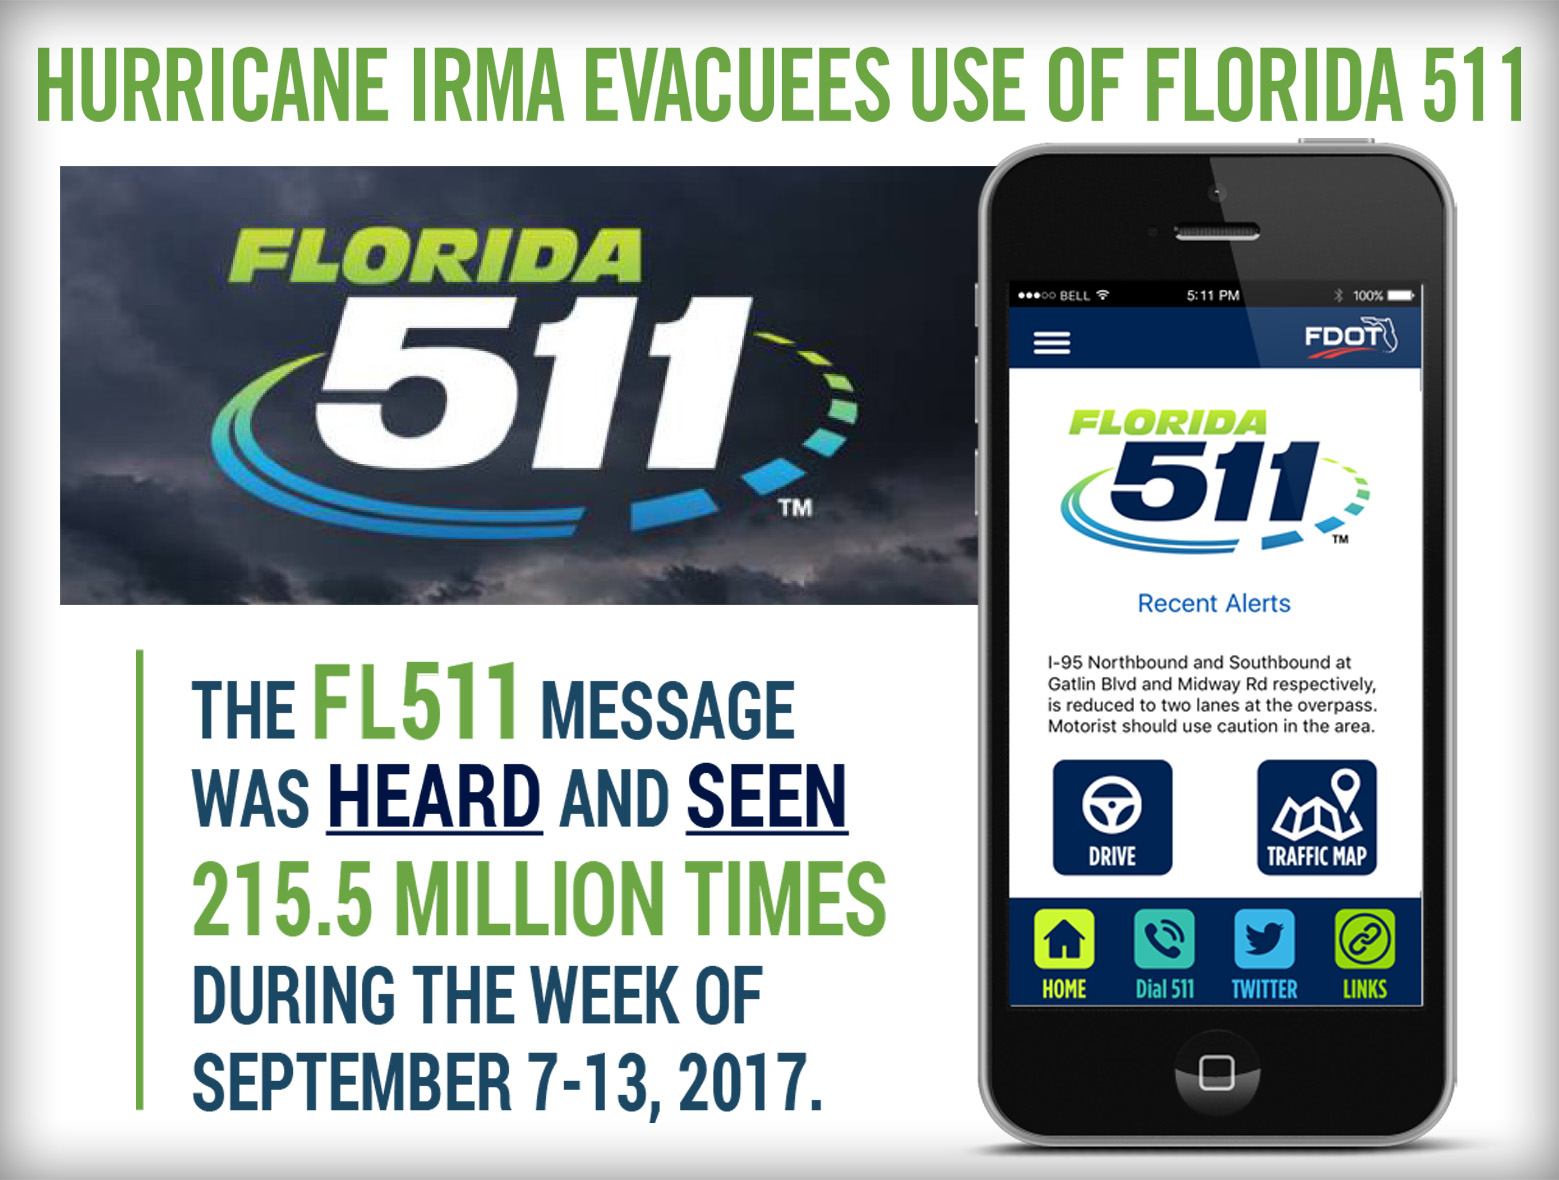 Global-5's Hurricane Irma Outreach Advances Best Practices